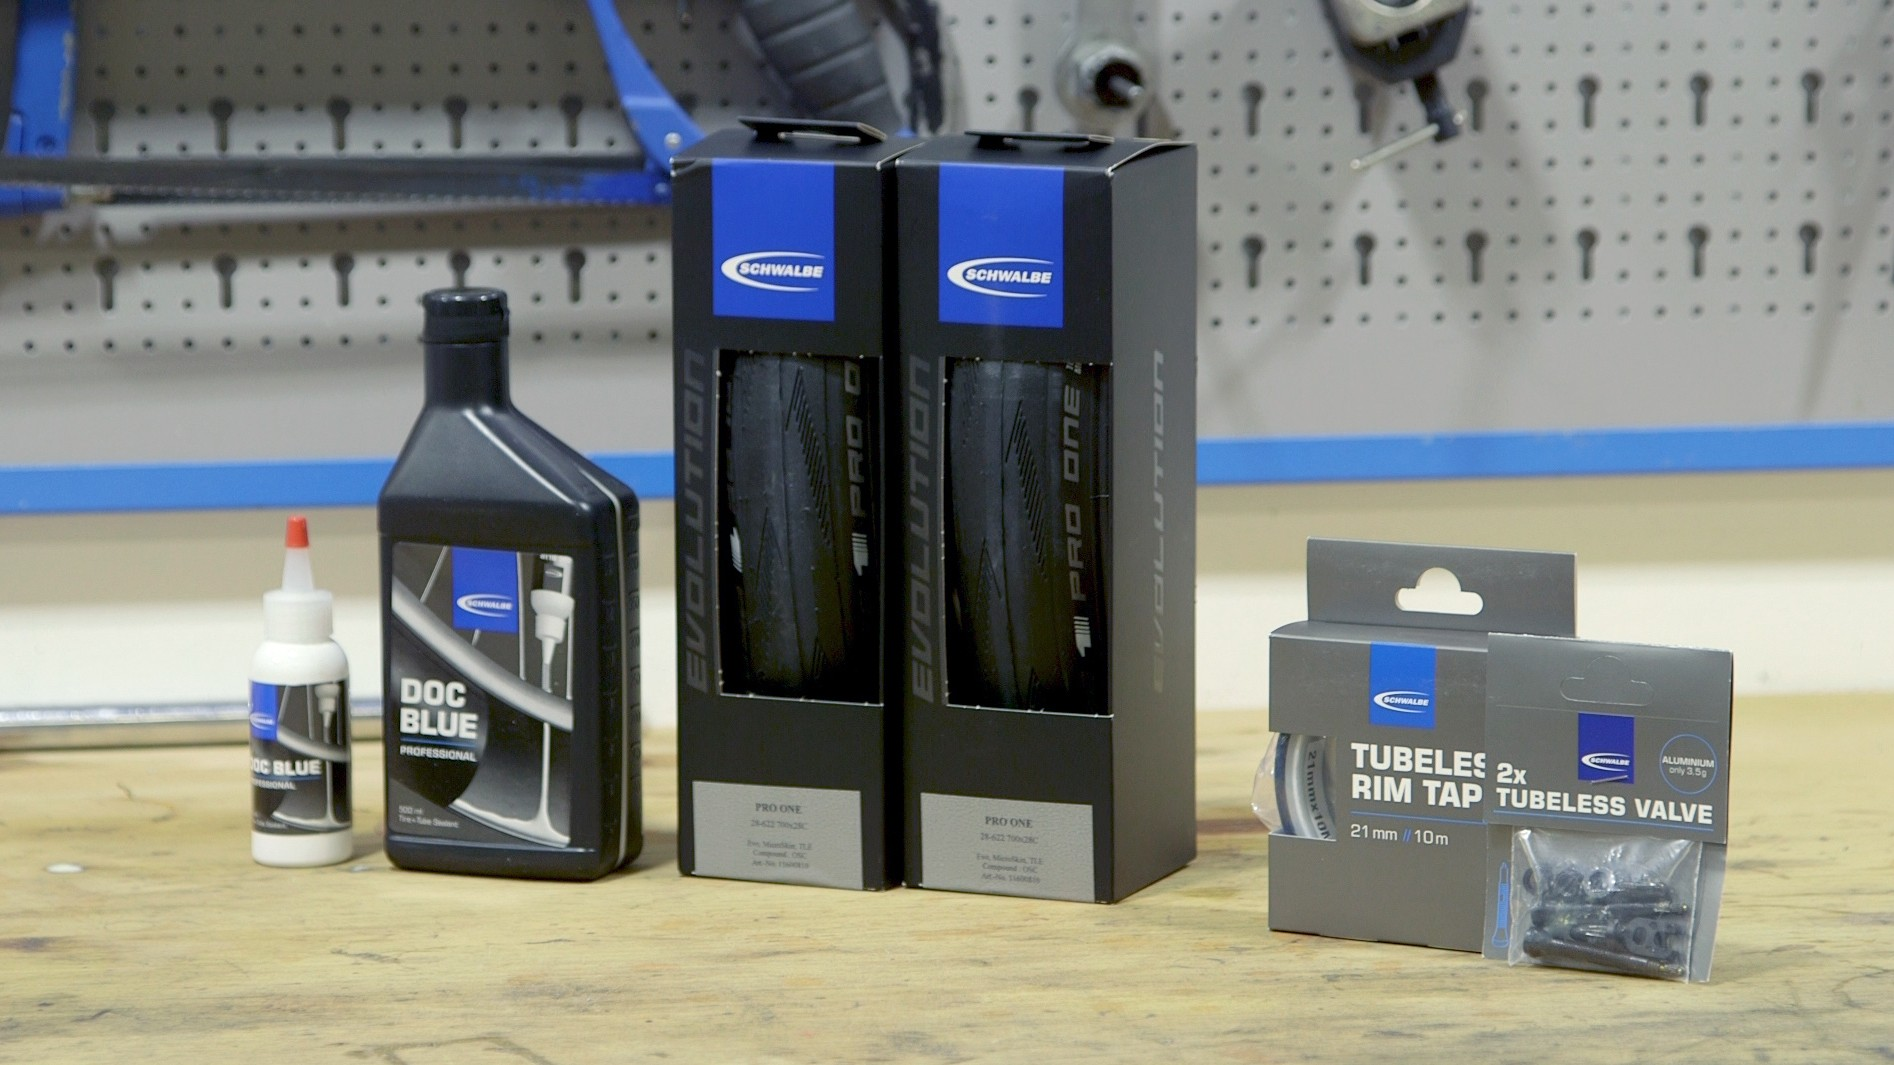 We demystify the process of setting up road tubeless tires